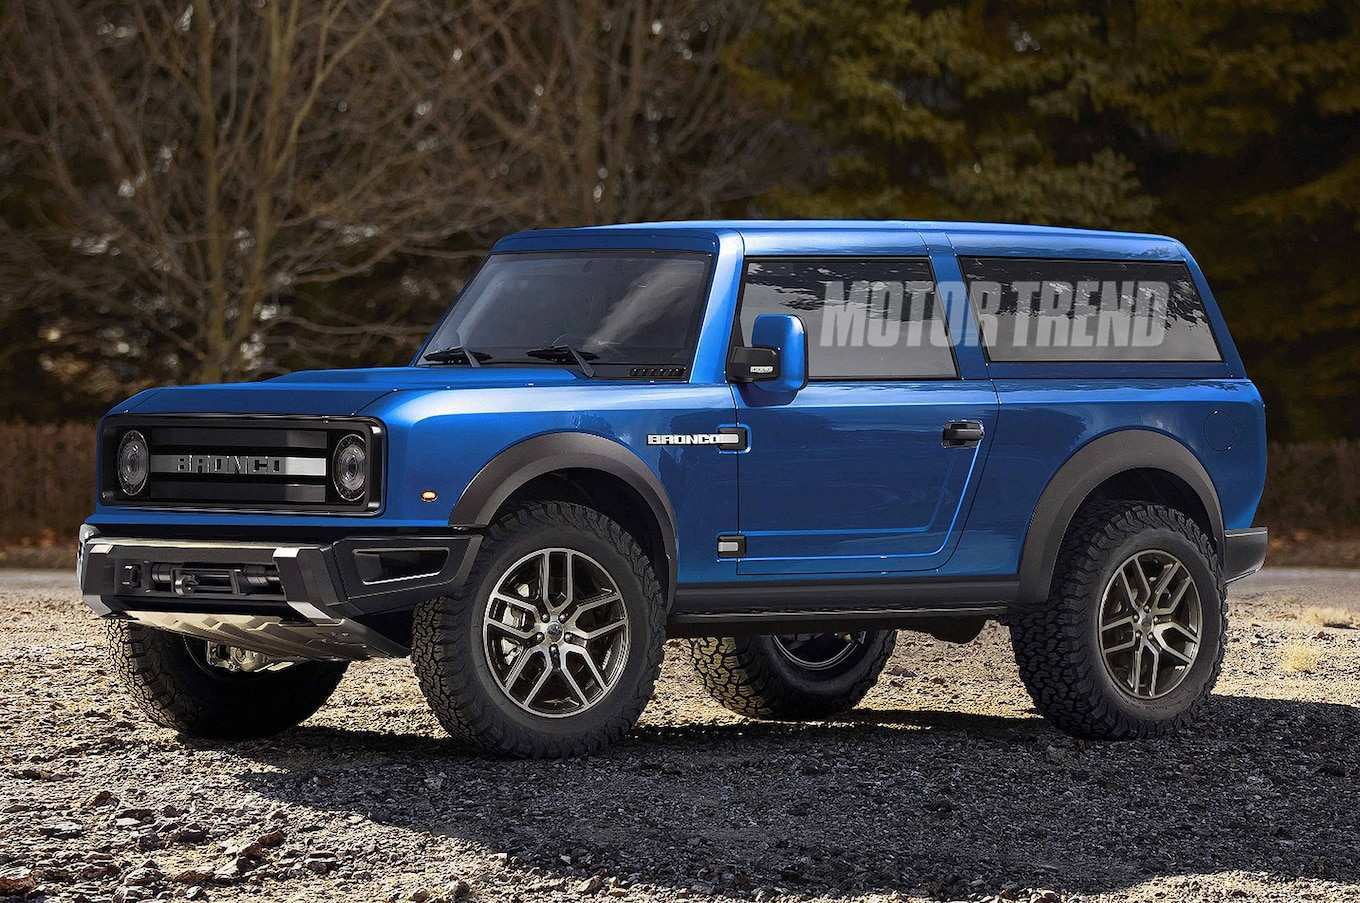 95 A Build Your Own 2020 Ford Bronco Pictures